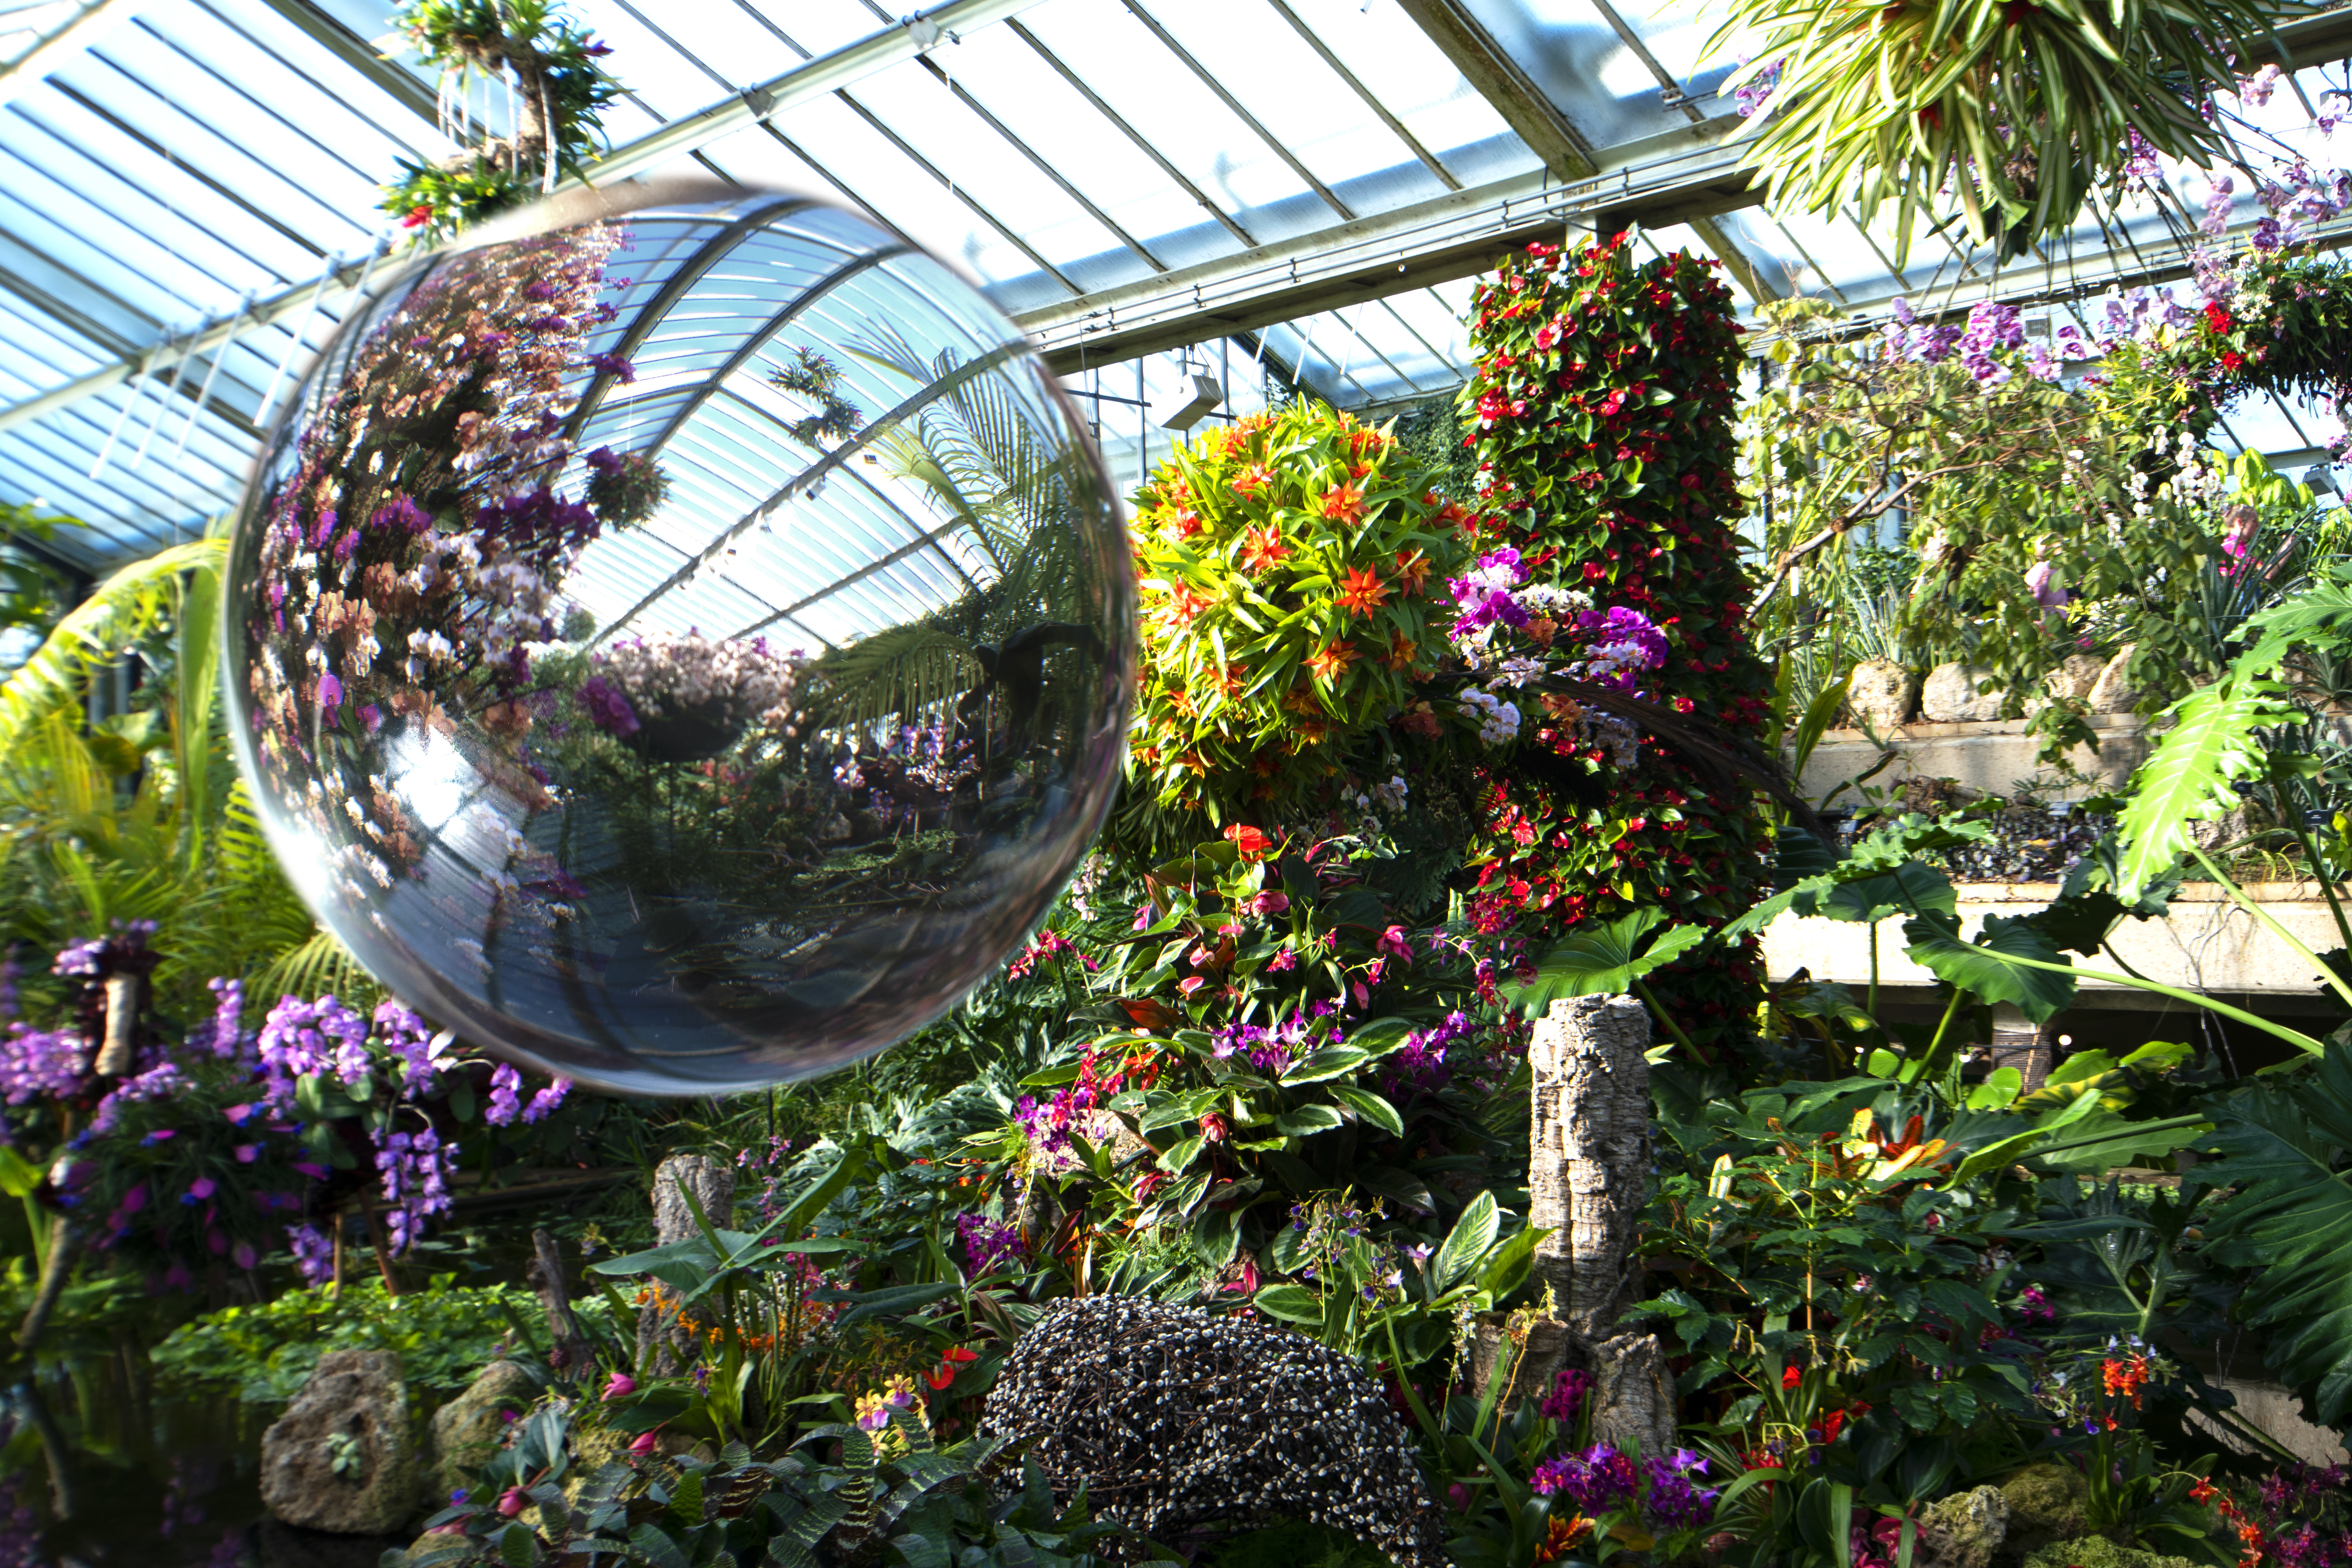 Orchids-with-glass-ball